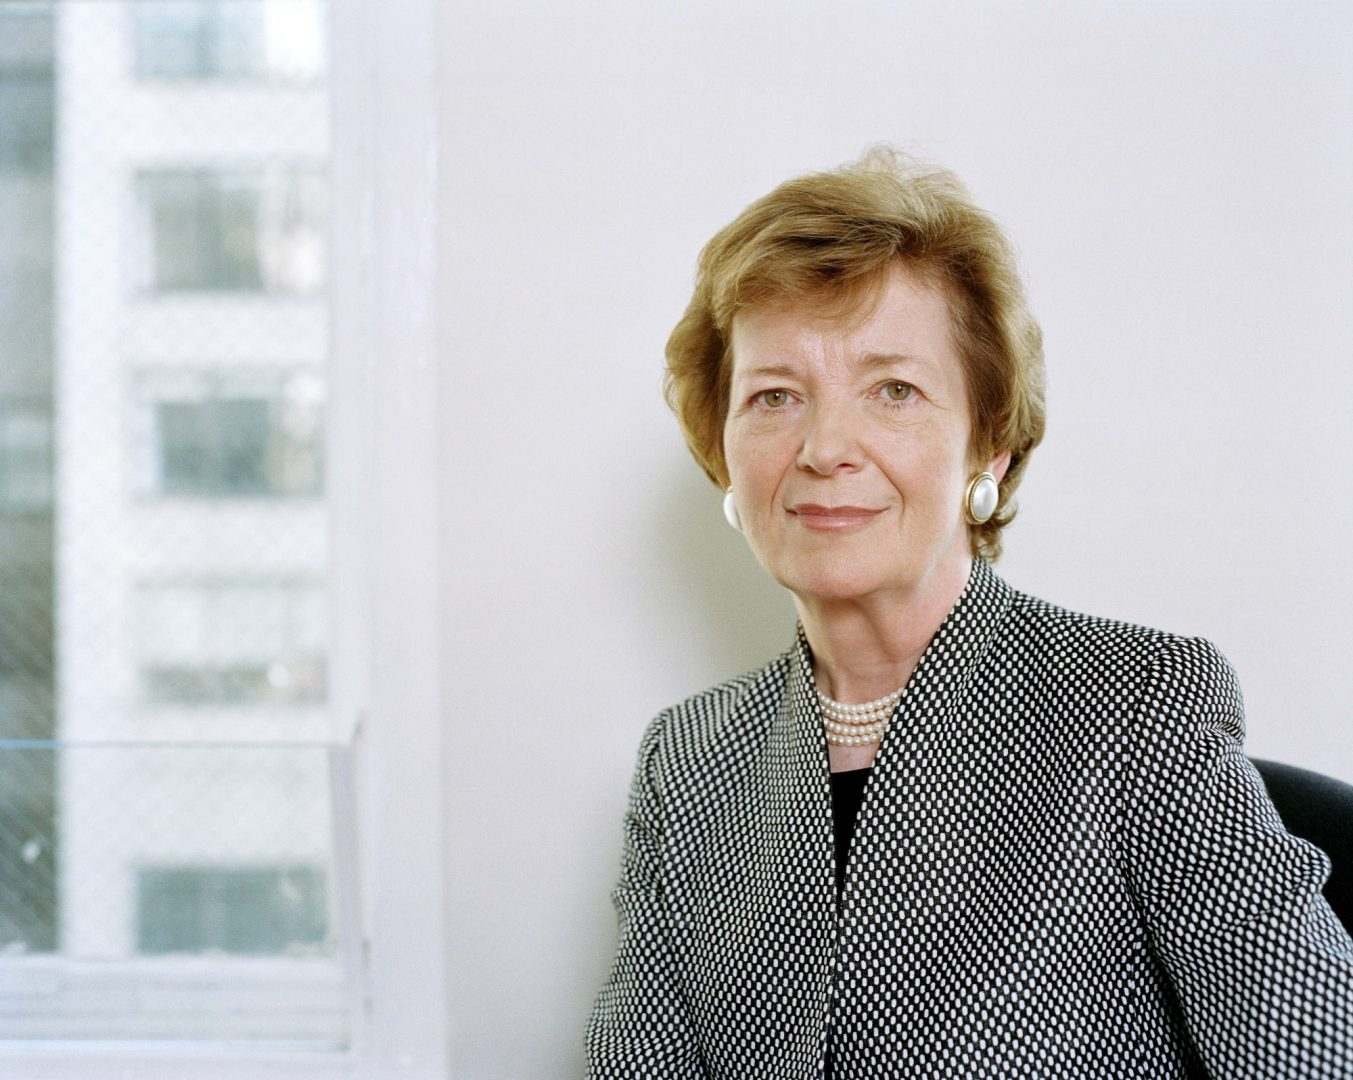 Her Excellency Mary Robinson Guest of Honour of the Academy of Young Diplomats!